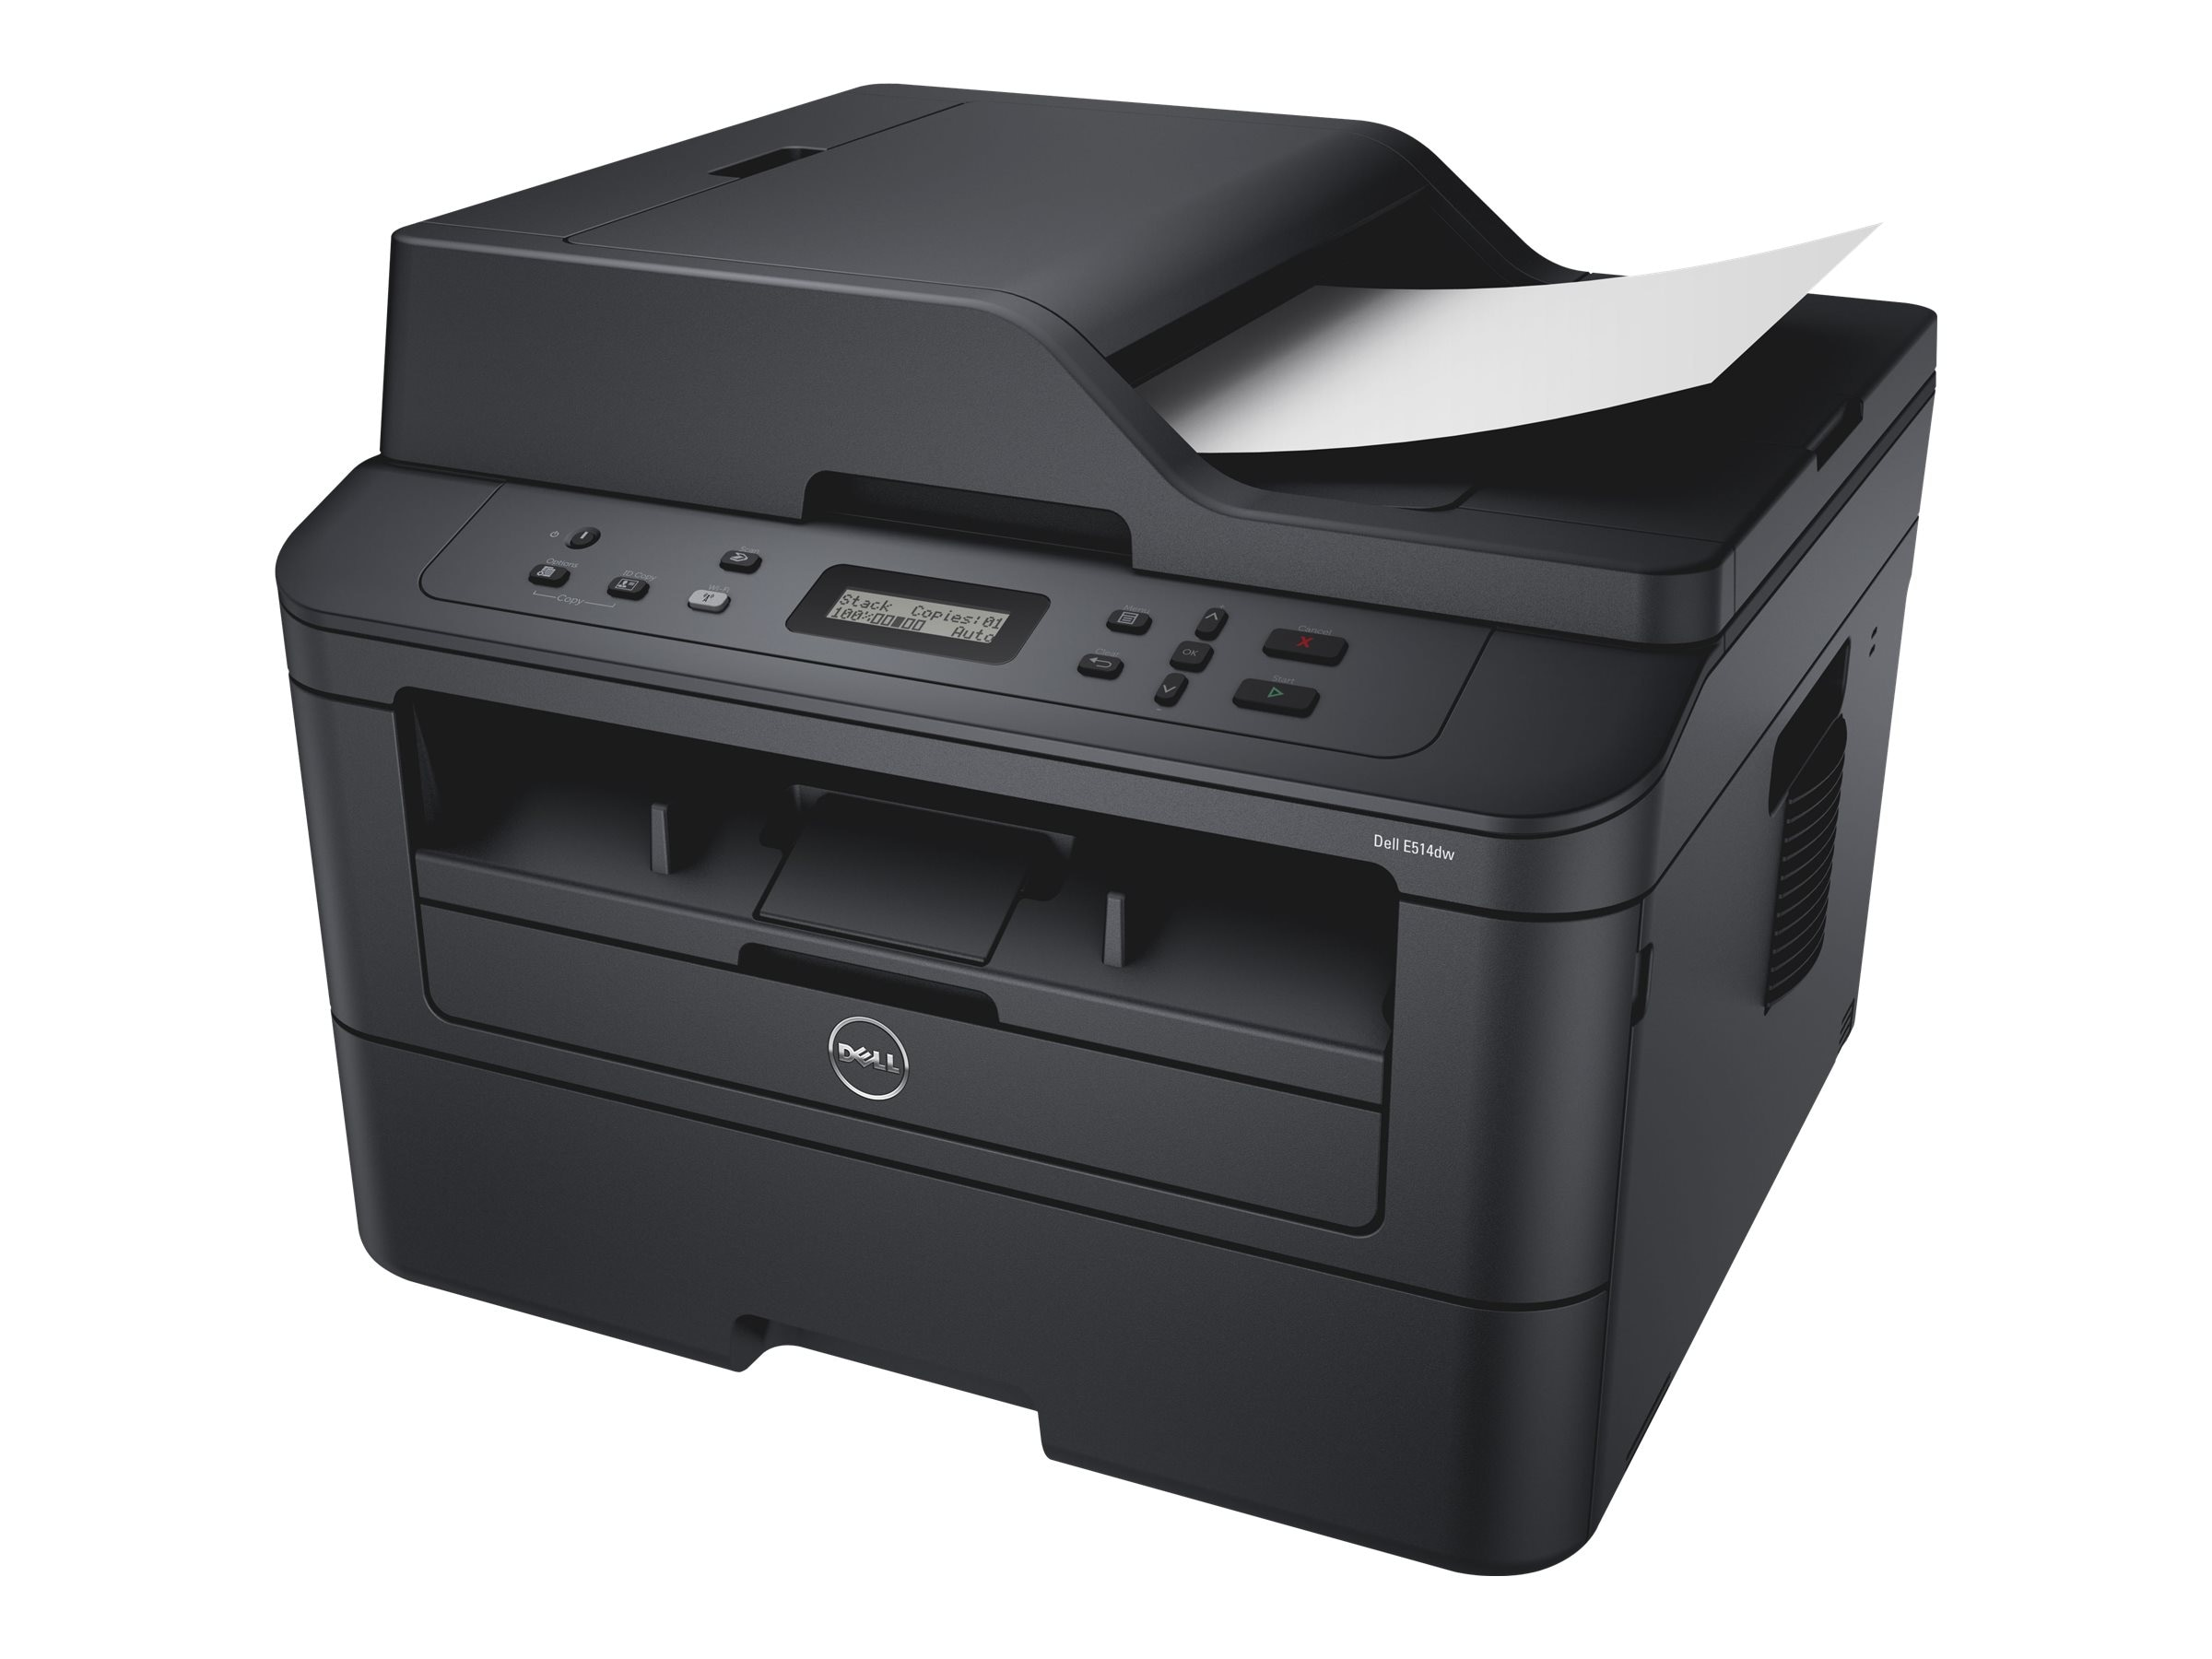 Dell E514dw Black & White Laser Multifunction Printer (210-AEHJ)